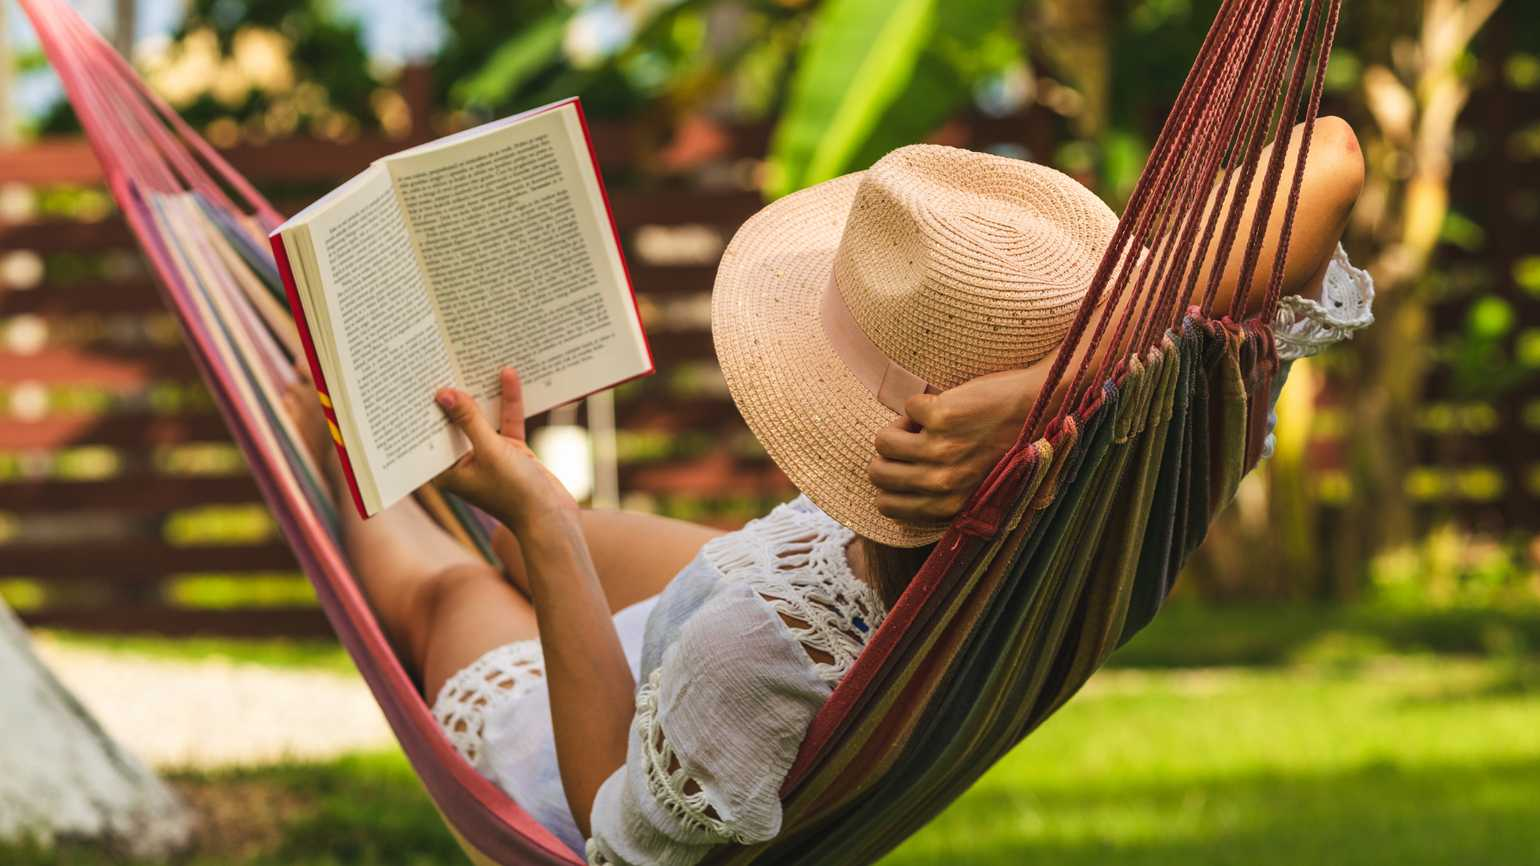 A woman reading a book in a hammock.